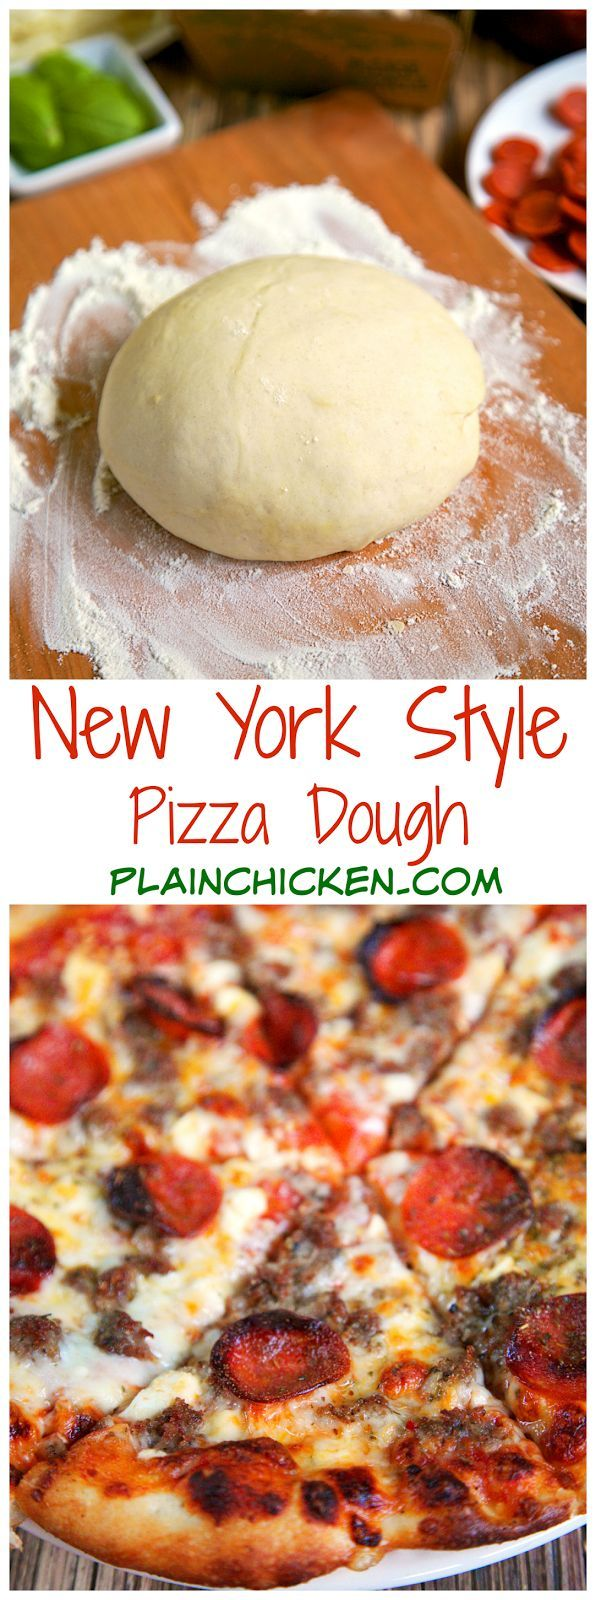 New York Style Pizza Dough | Plain Chicken®